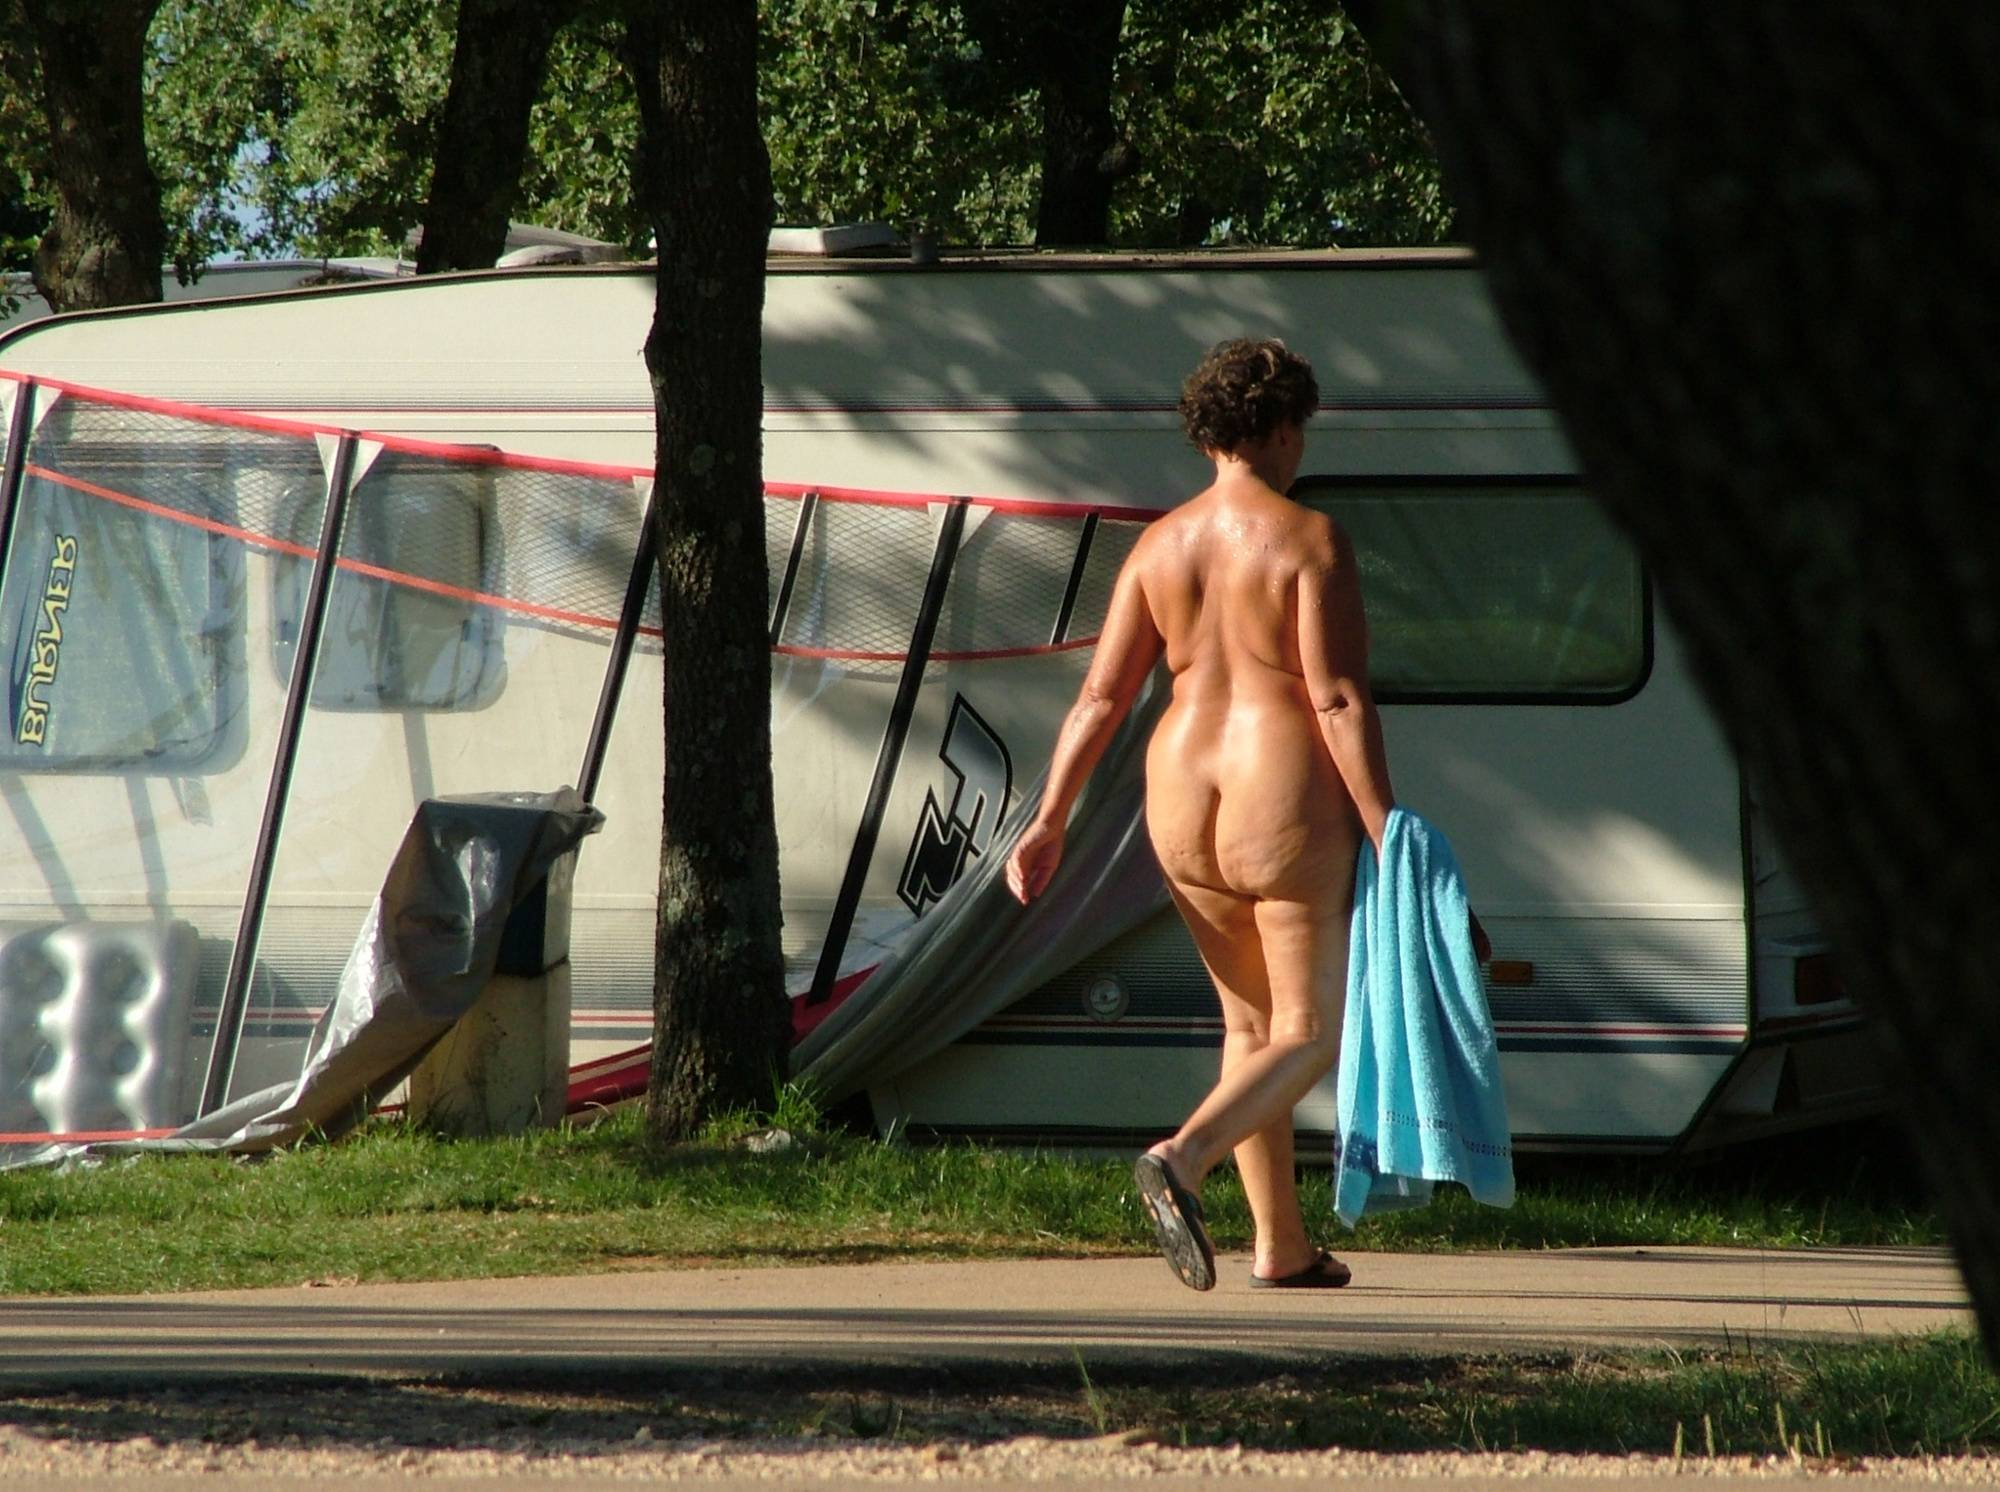 Nudist Pics Sunny FKK Camp Sites - 2